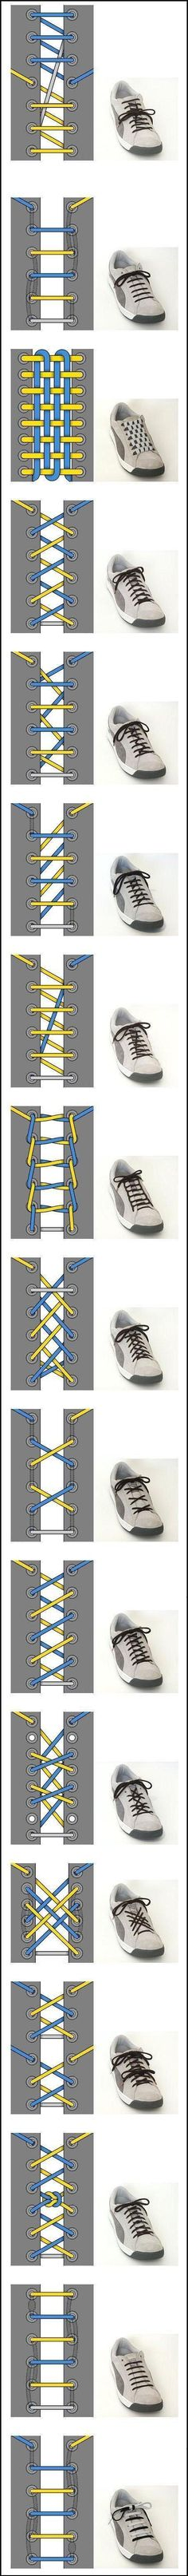 Different Style of Shoe Lace